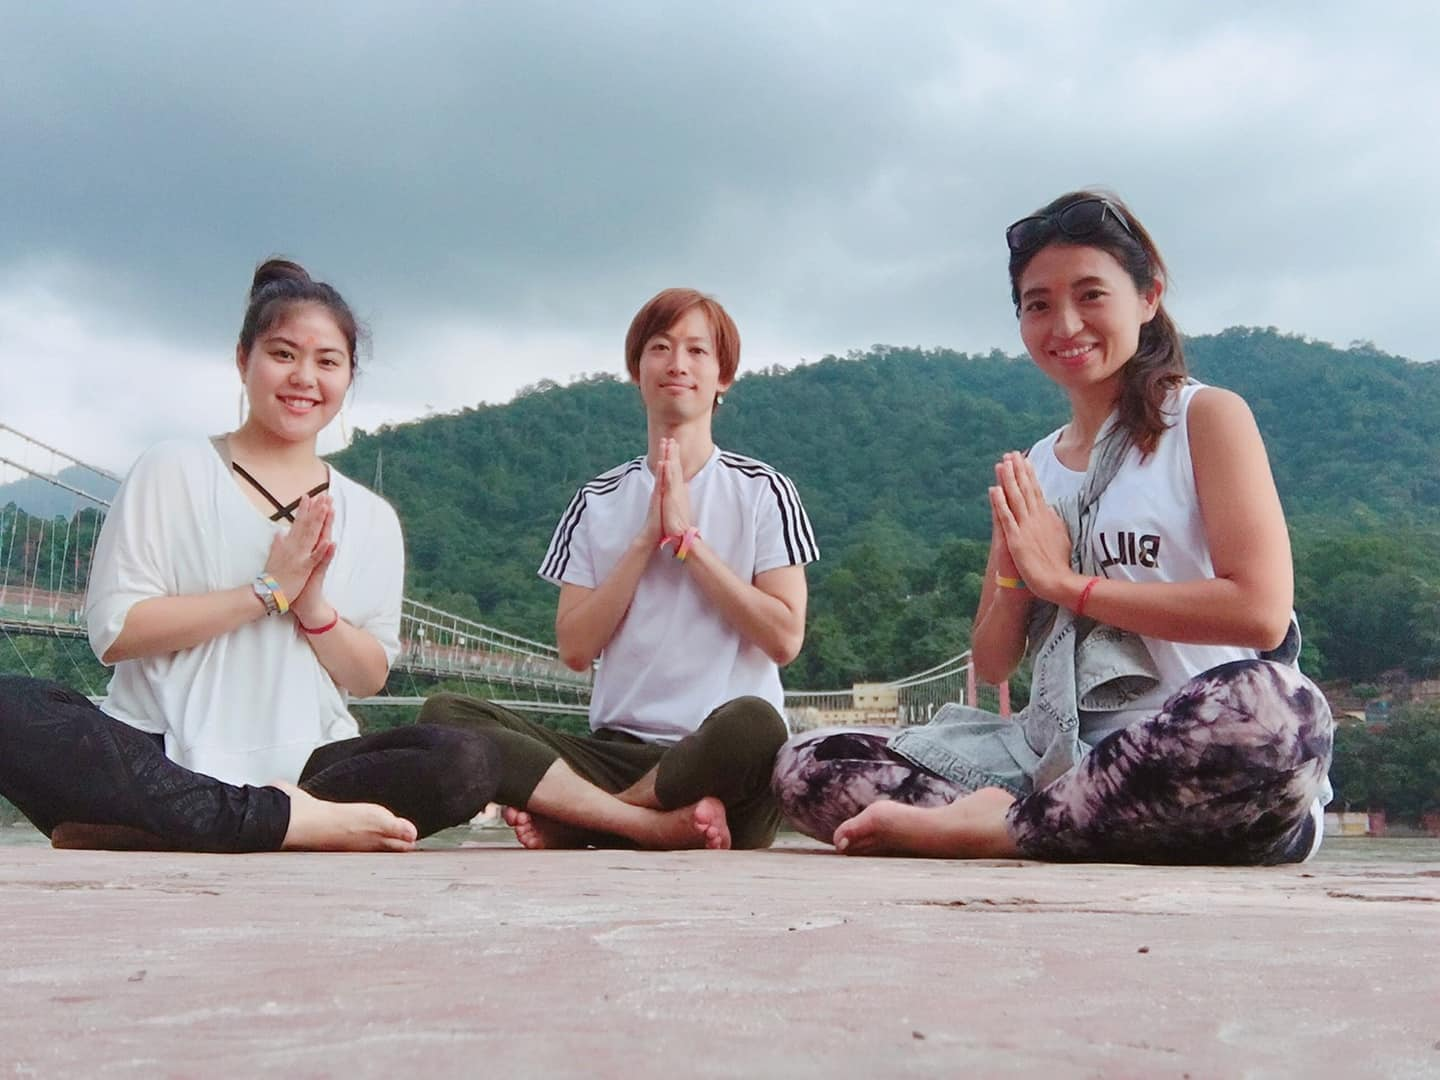 Yoga Courses, Classes and Teacher Training in Rishikesh India